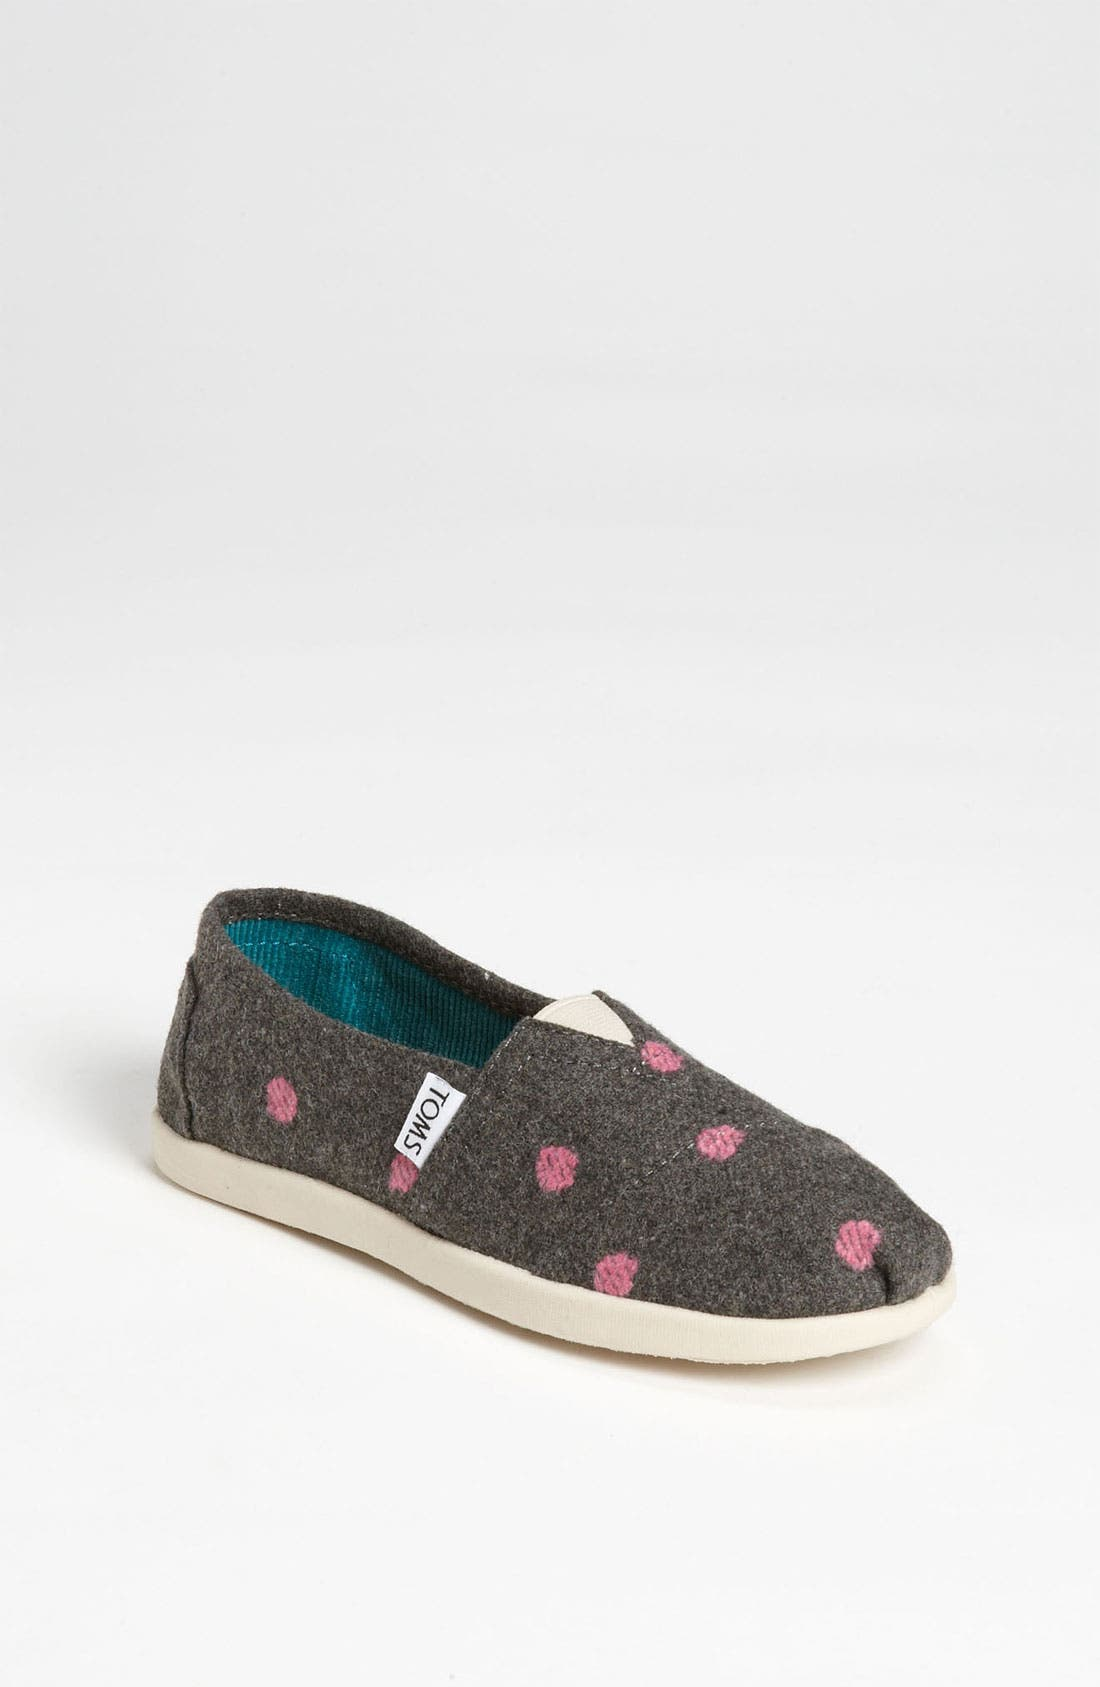 Main Image - TOMS 'Classic Youth - Dot' Slip-On (Toddler, Little Kid & Big Kid)